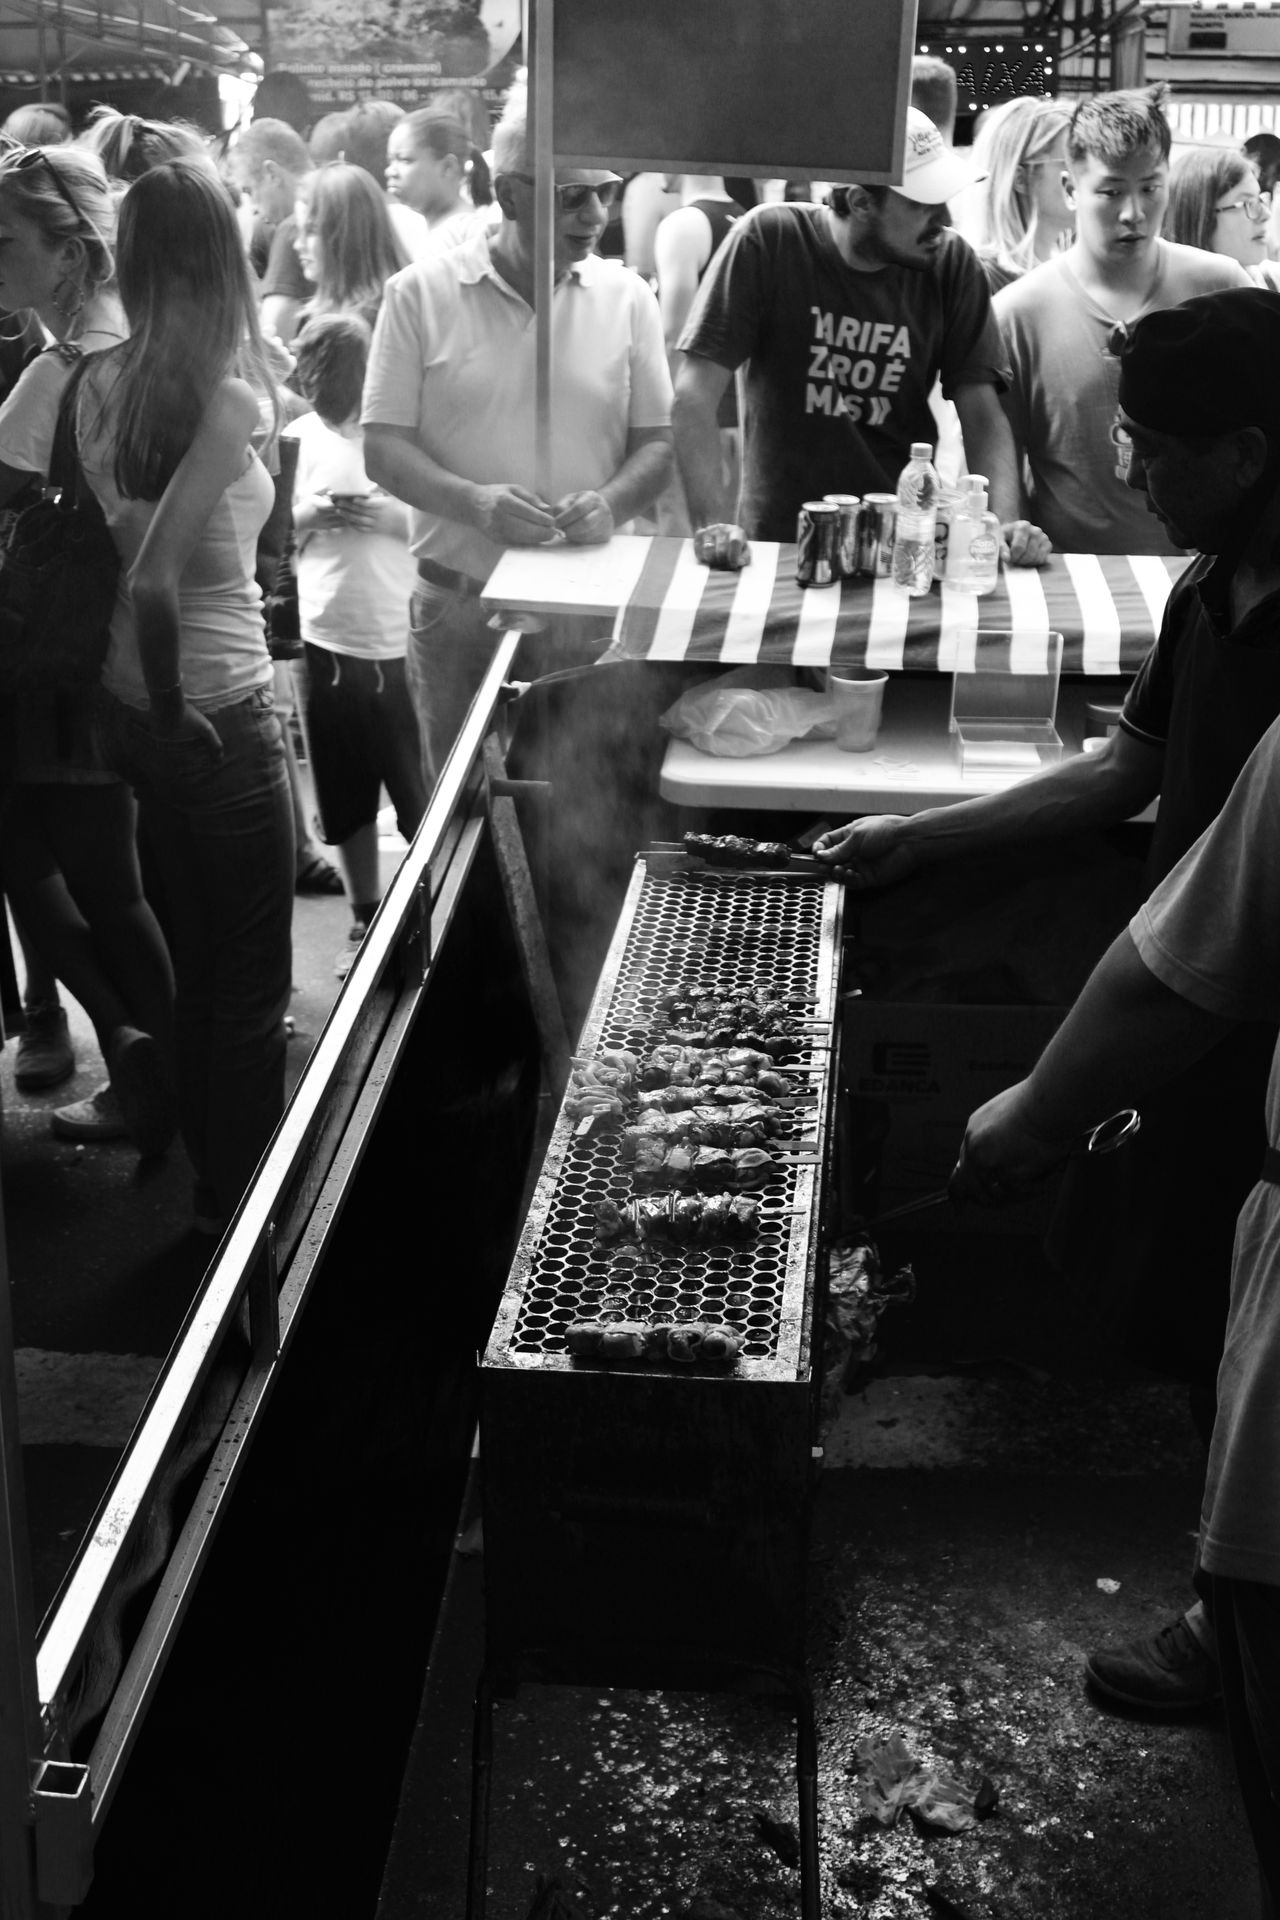 Feira Da Liberdade Sao Paulo - Brazil City Life Monochrome Photography Undergroundphotography Black And White Photography Blackandwhitephotography Dramatic Black And White Abundance Food And Drink Lifestyles Oriental Food  Oriental Style Japan Style Eat Eat And Eat